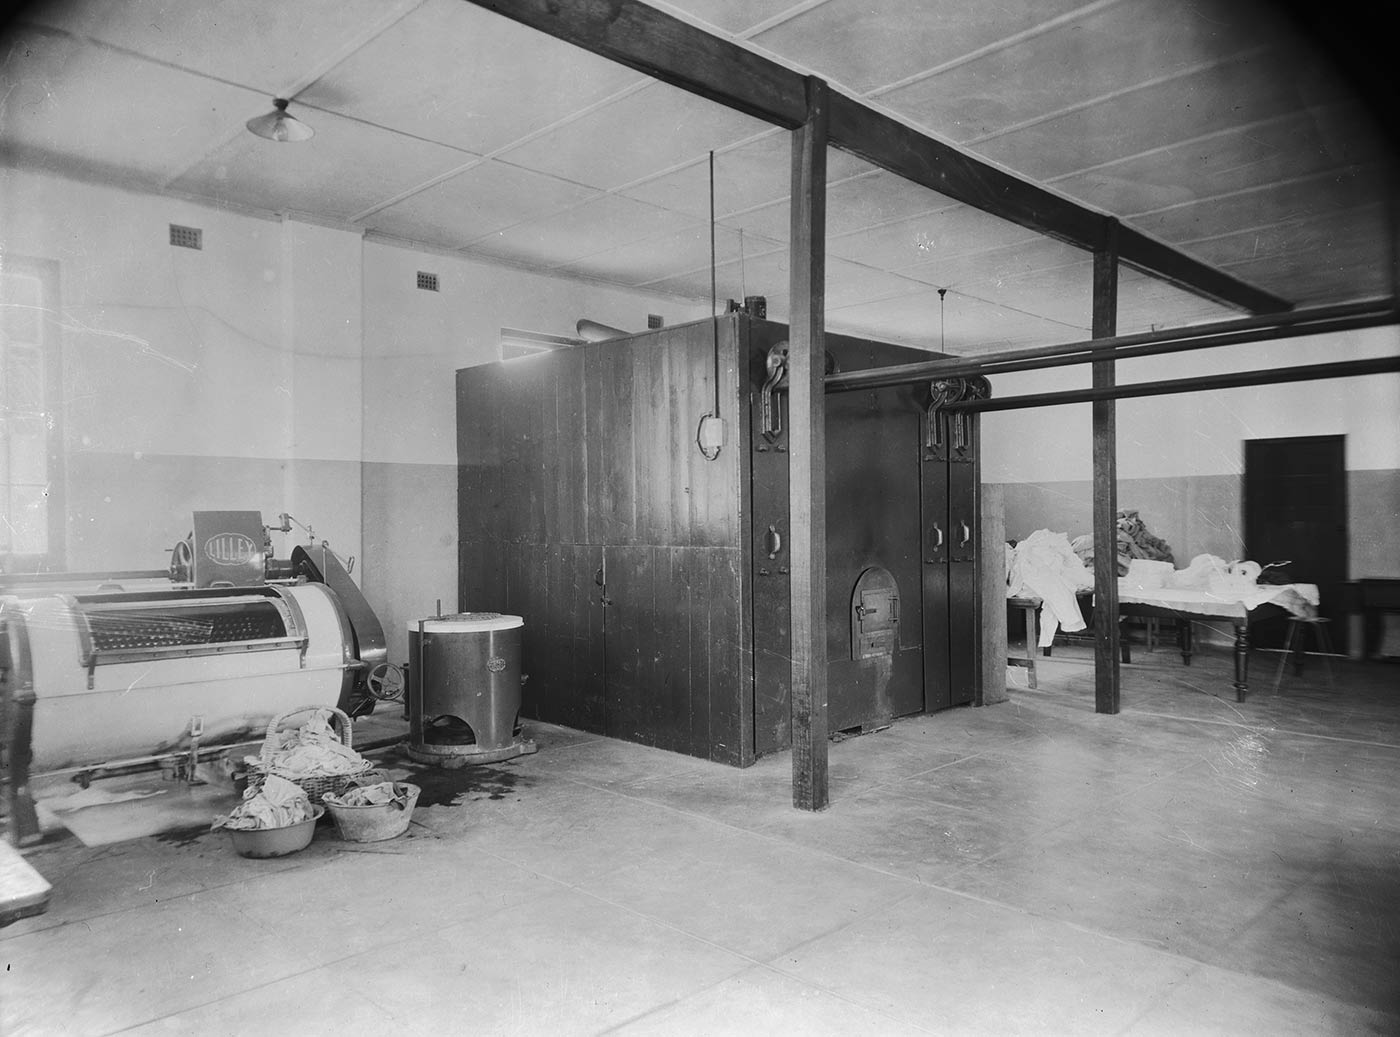 Black and white photograph showing a large commercial laundry, with baskets of wet clothes near a large wringer. - click to view larger image